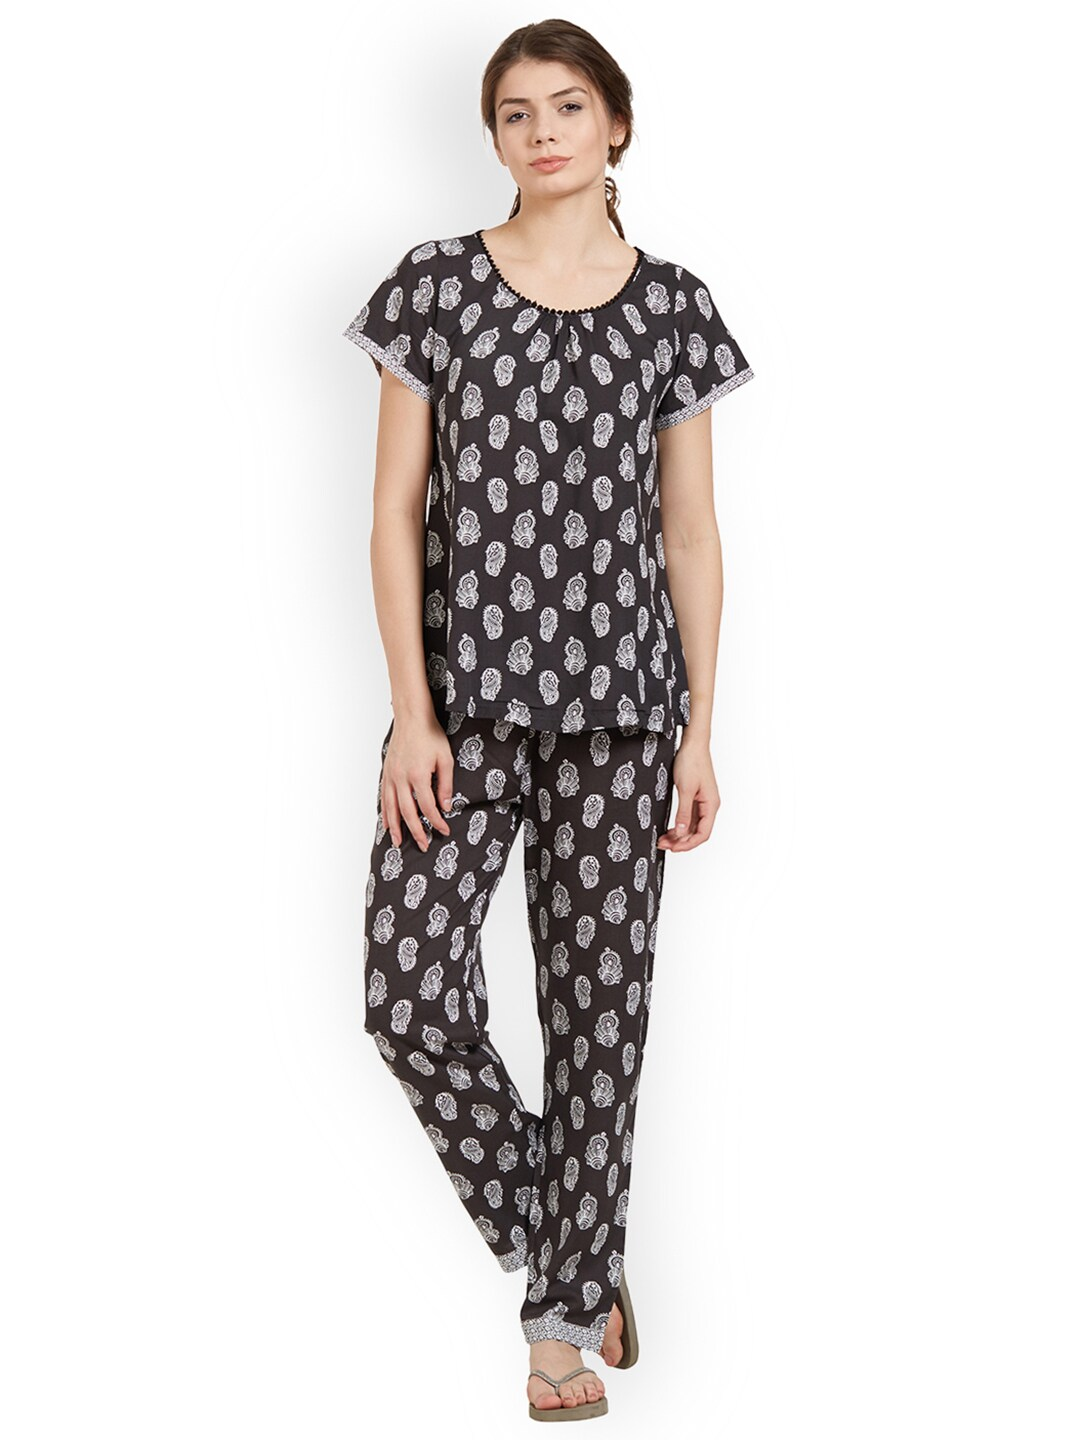 Pyjama Soie Buy Soie Black Pyjama Set Nt 2 Night Suits For Women 1097390